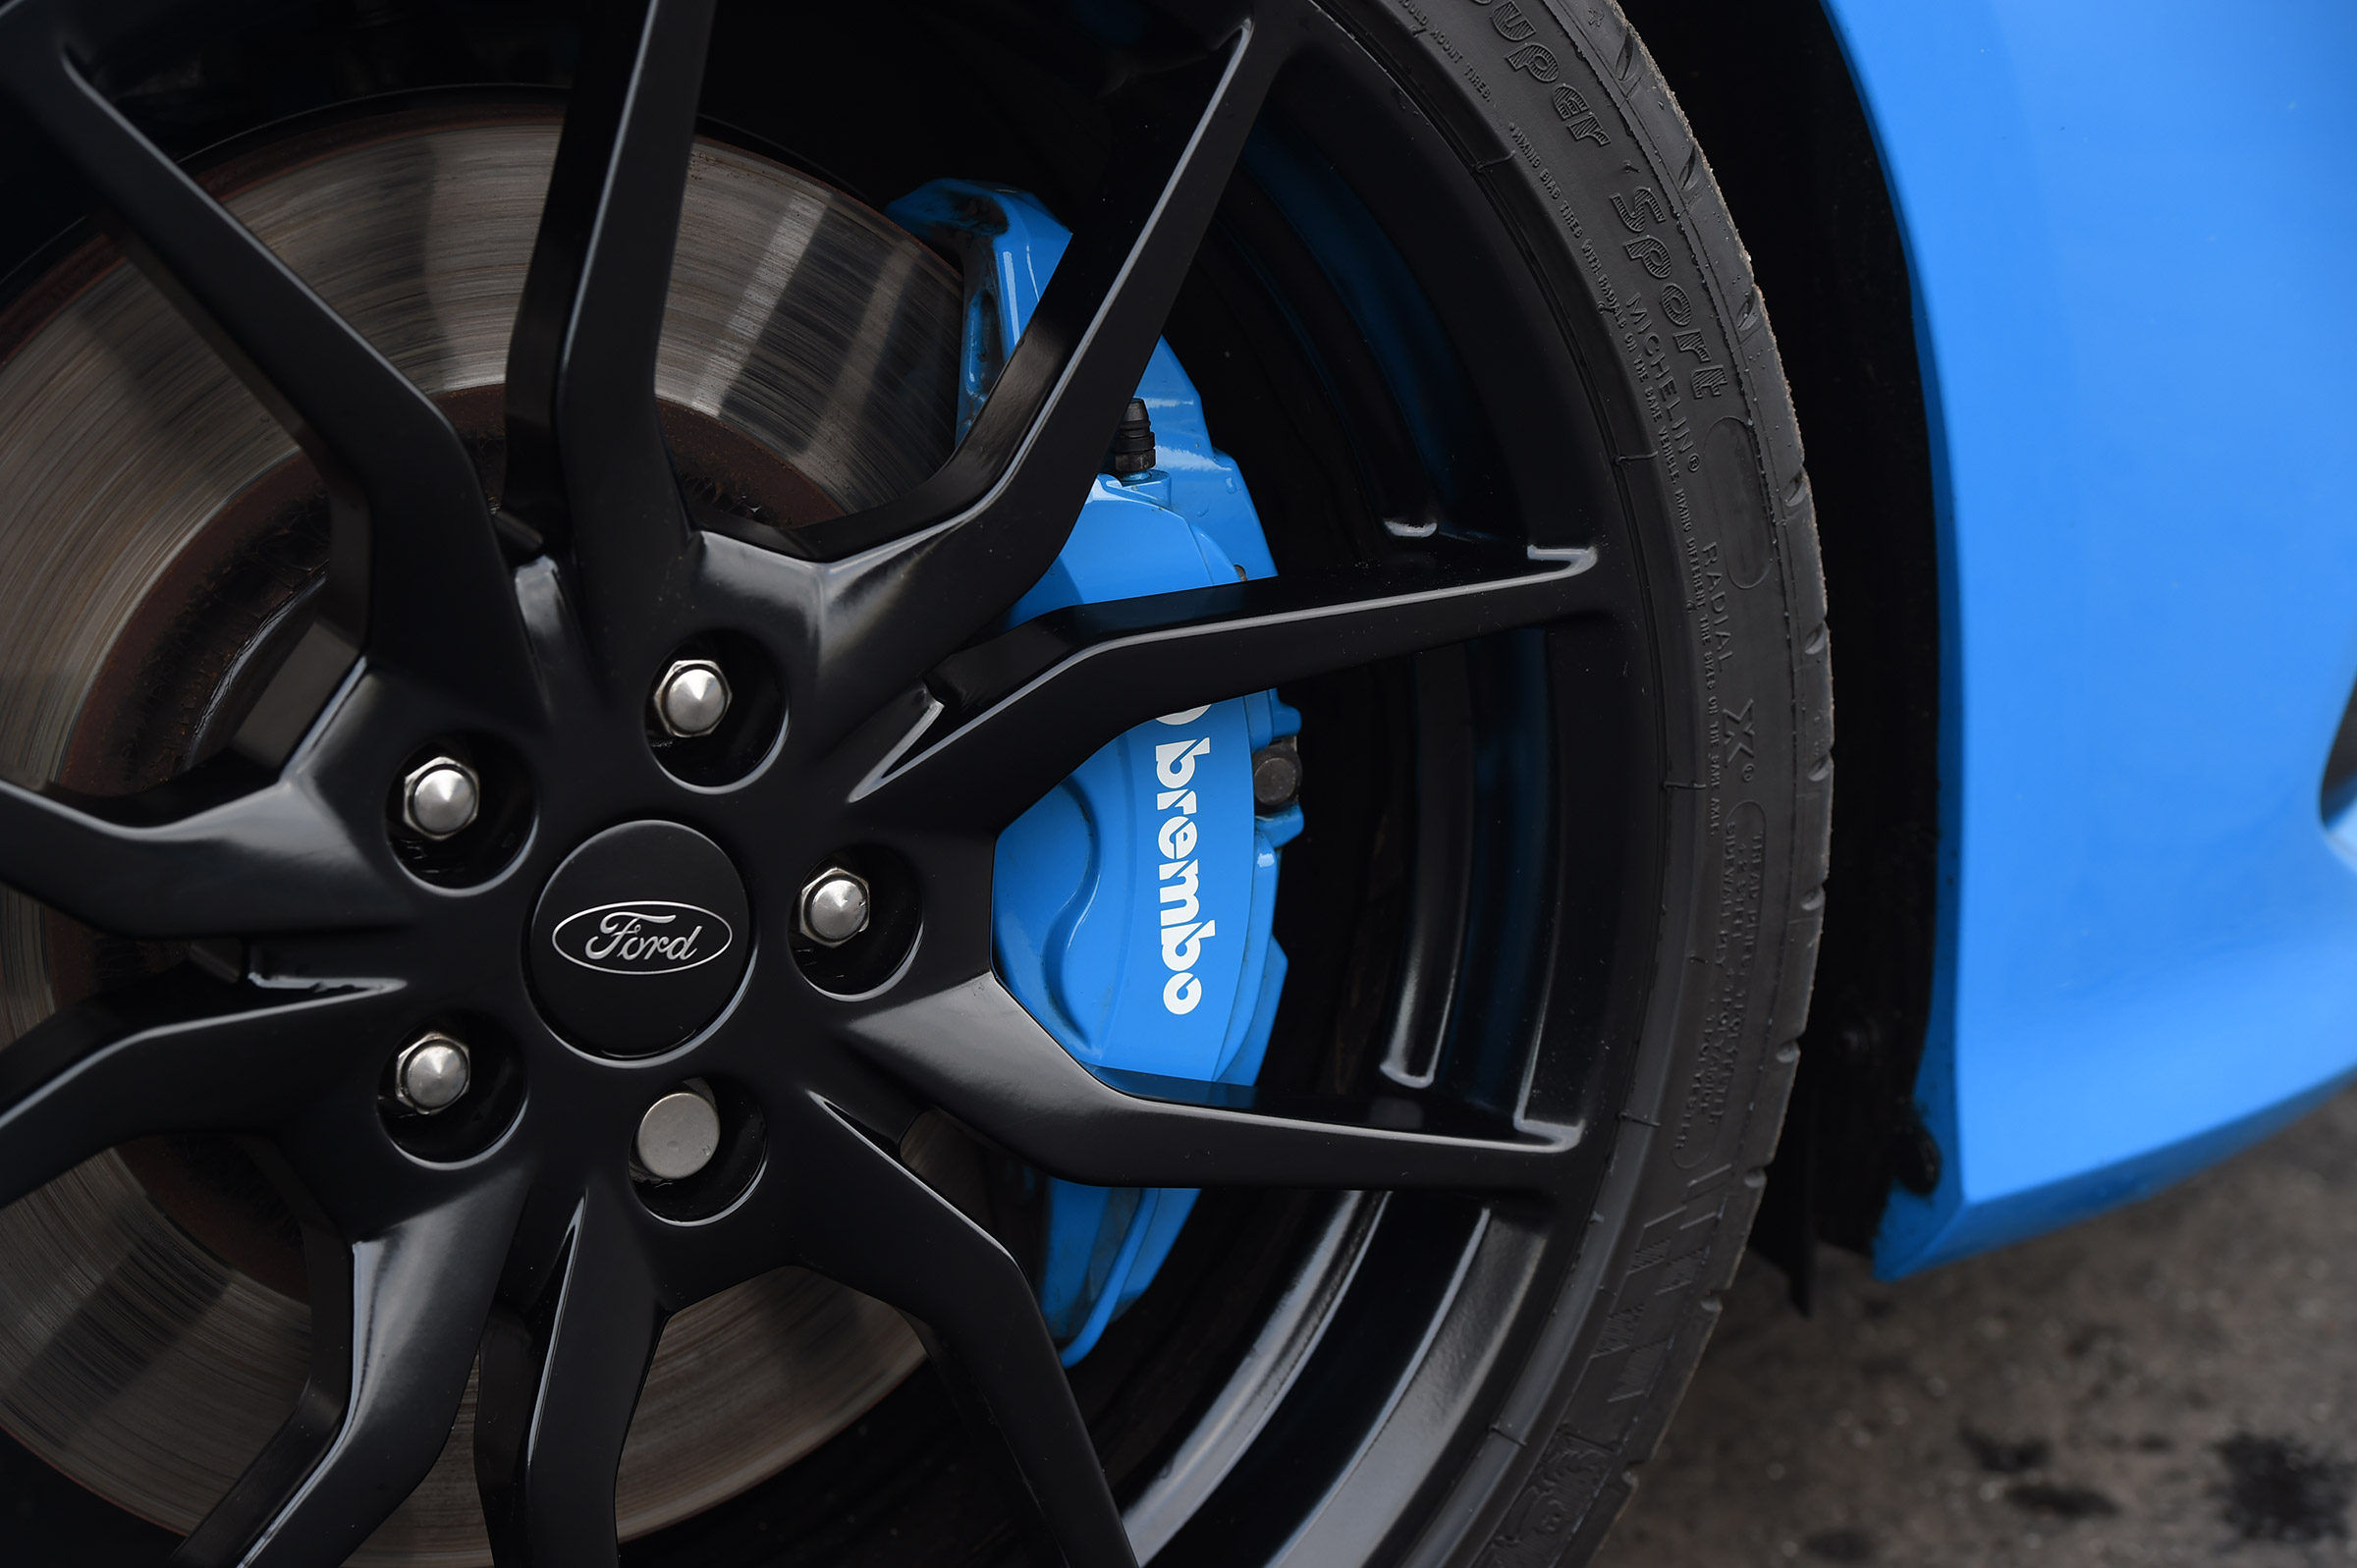 2017 Ford Focus RS Exterior Wheel Trim (Photo 8 of 23)